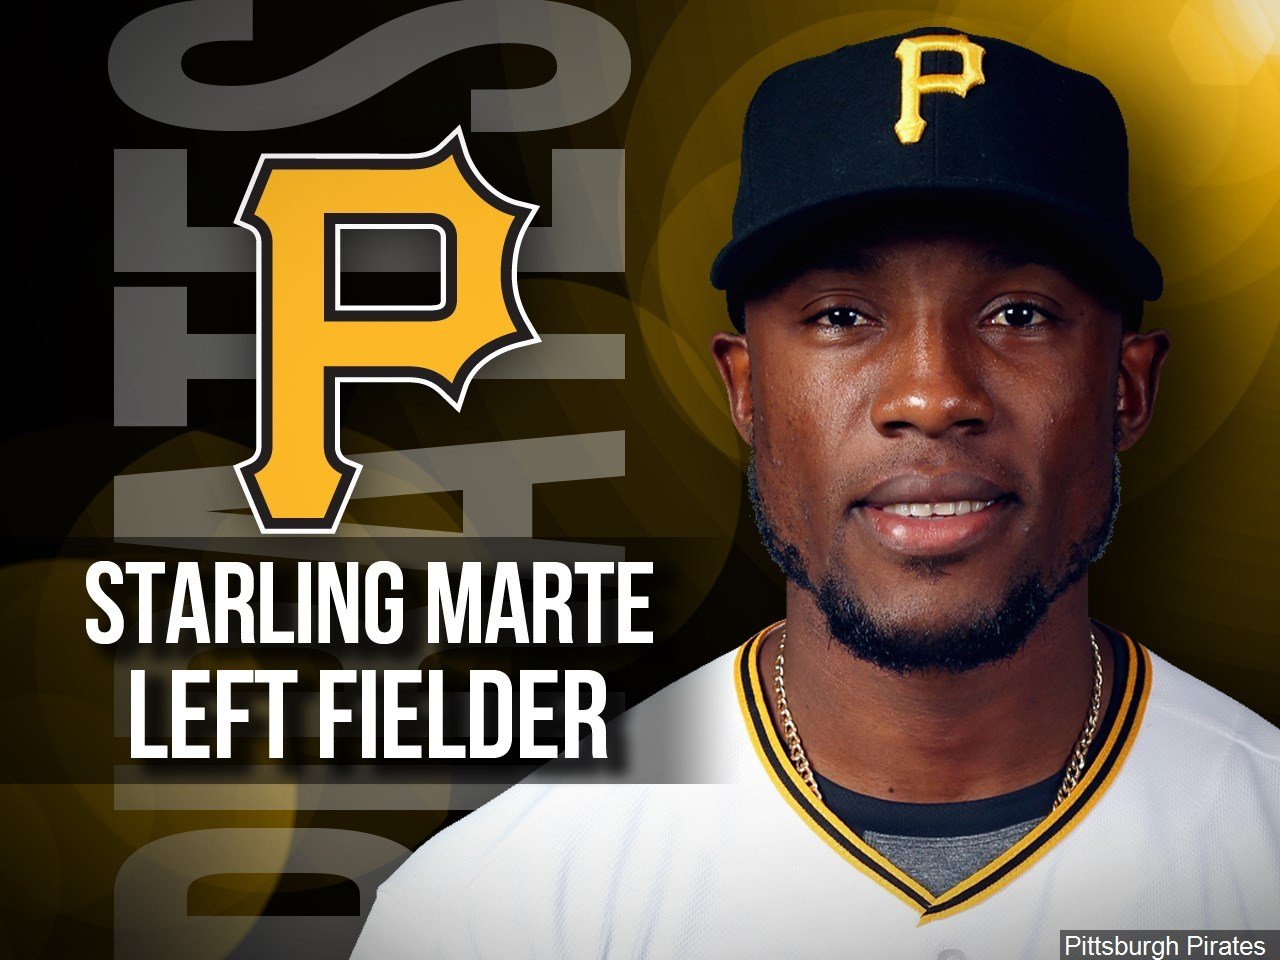 Pirates CF Starling Marte suspended 80 games for PEDs ...